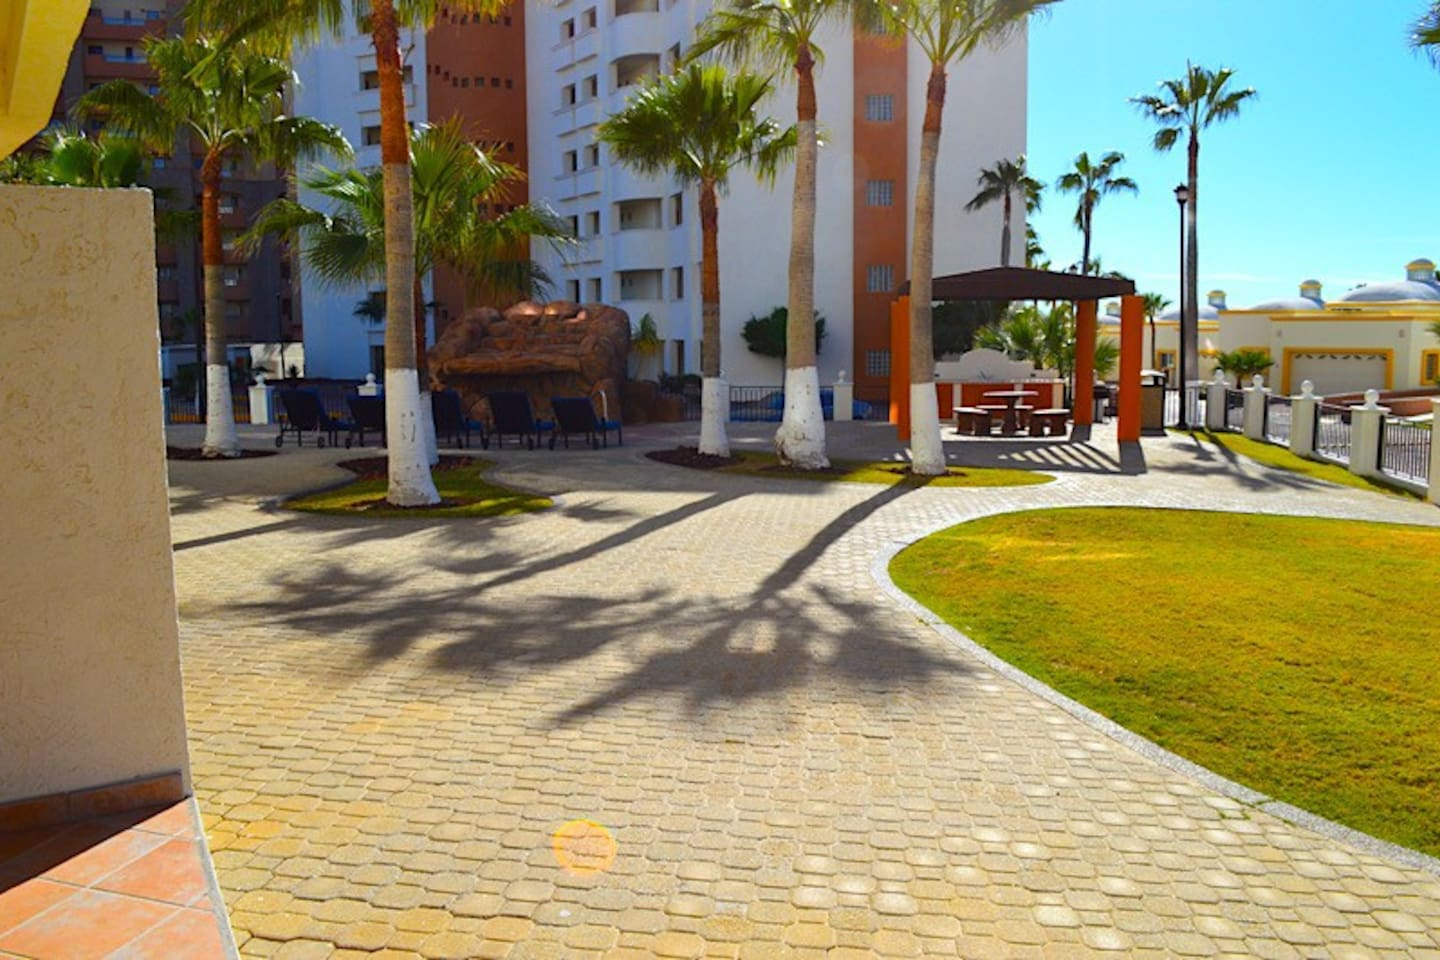 Boardwalk,Path,Sidewalk,Walkway,Palm Tree